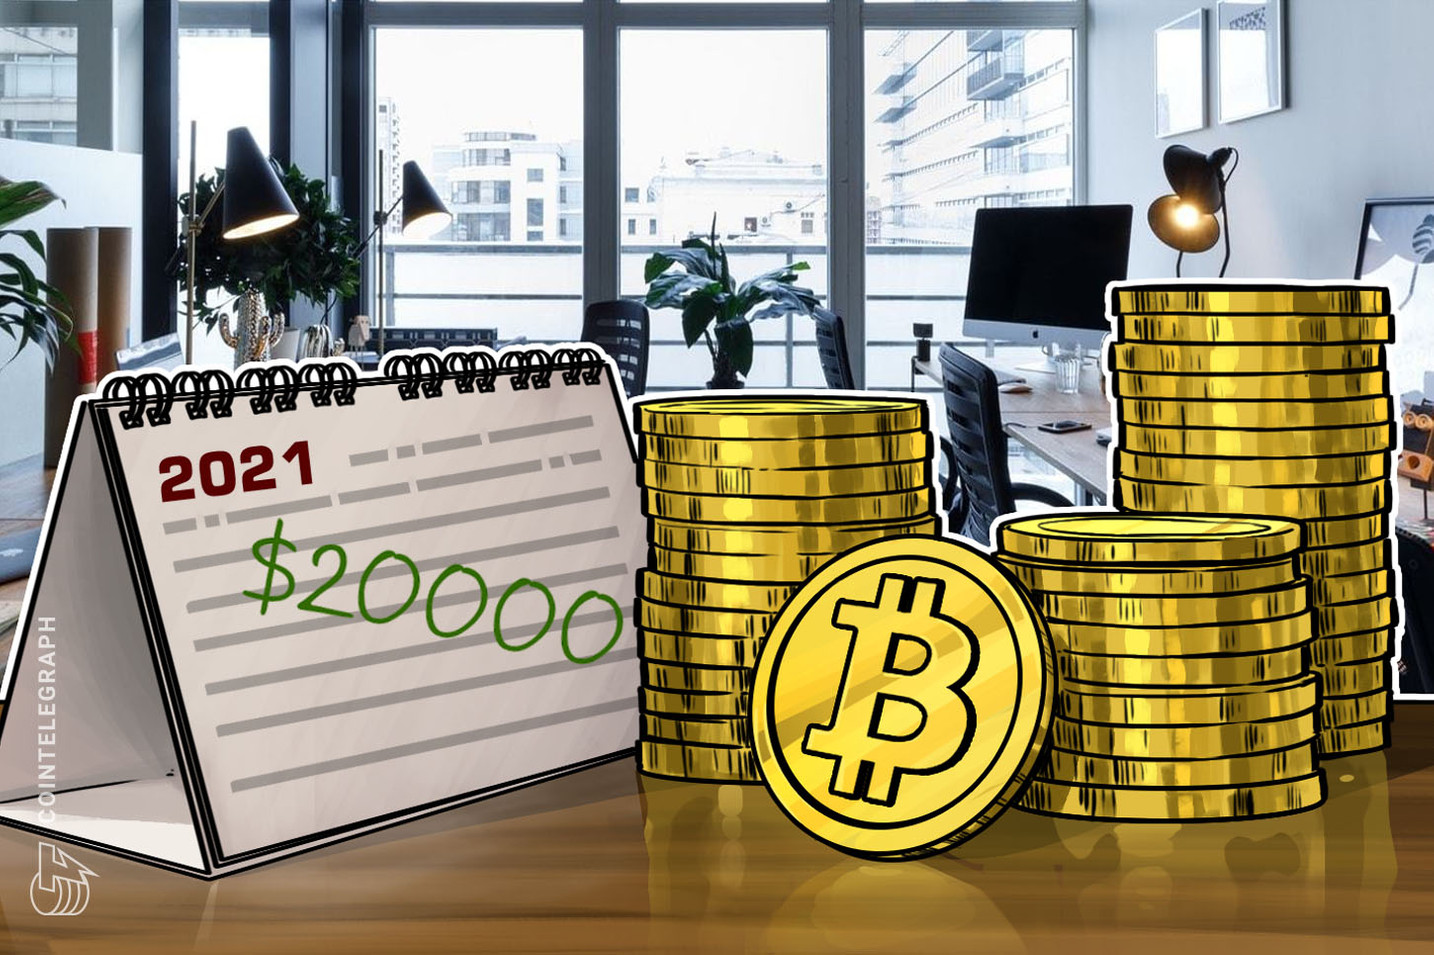 Financial Advisory Firm Says Past Market Trends Point to Bitcoin at $20,000 by 2021